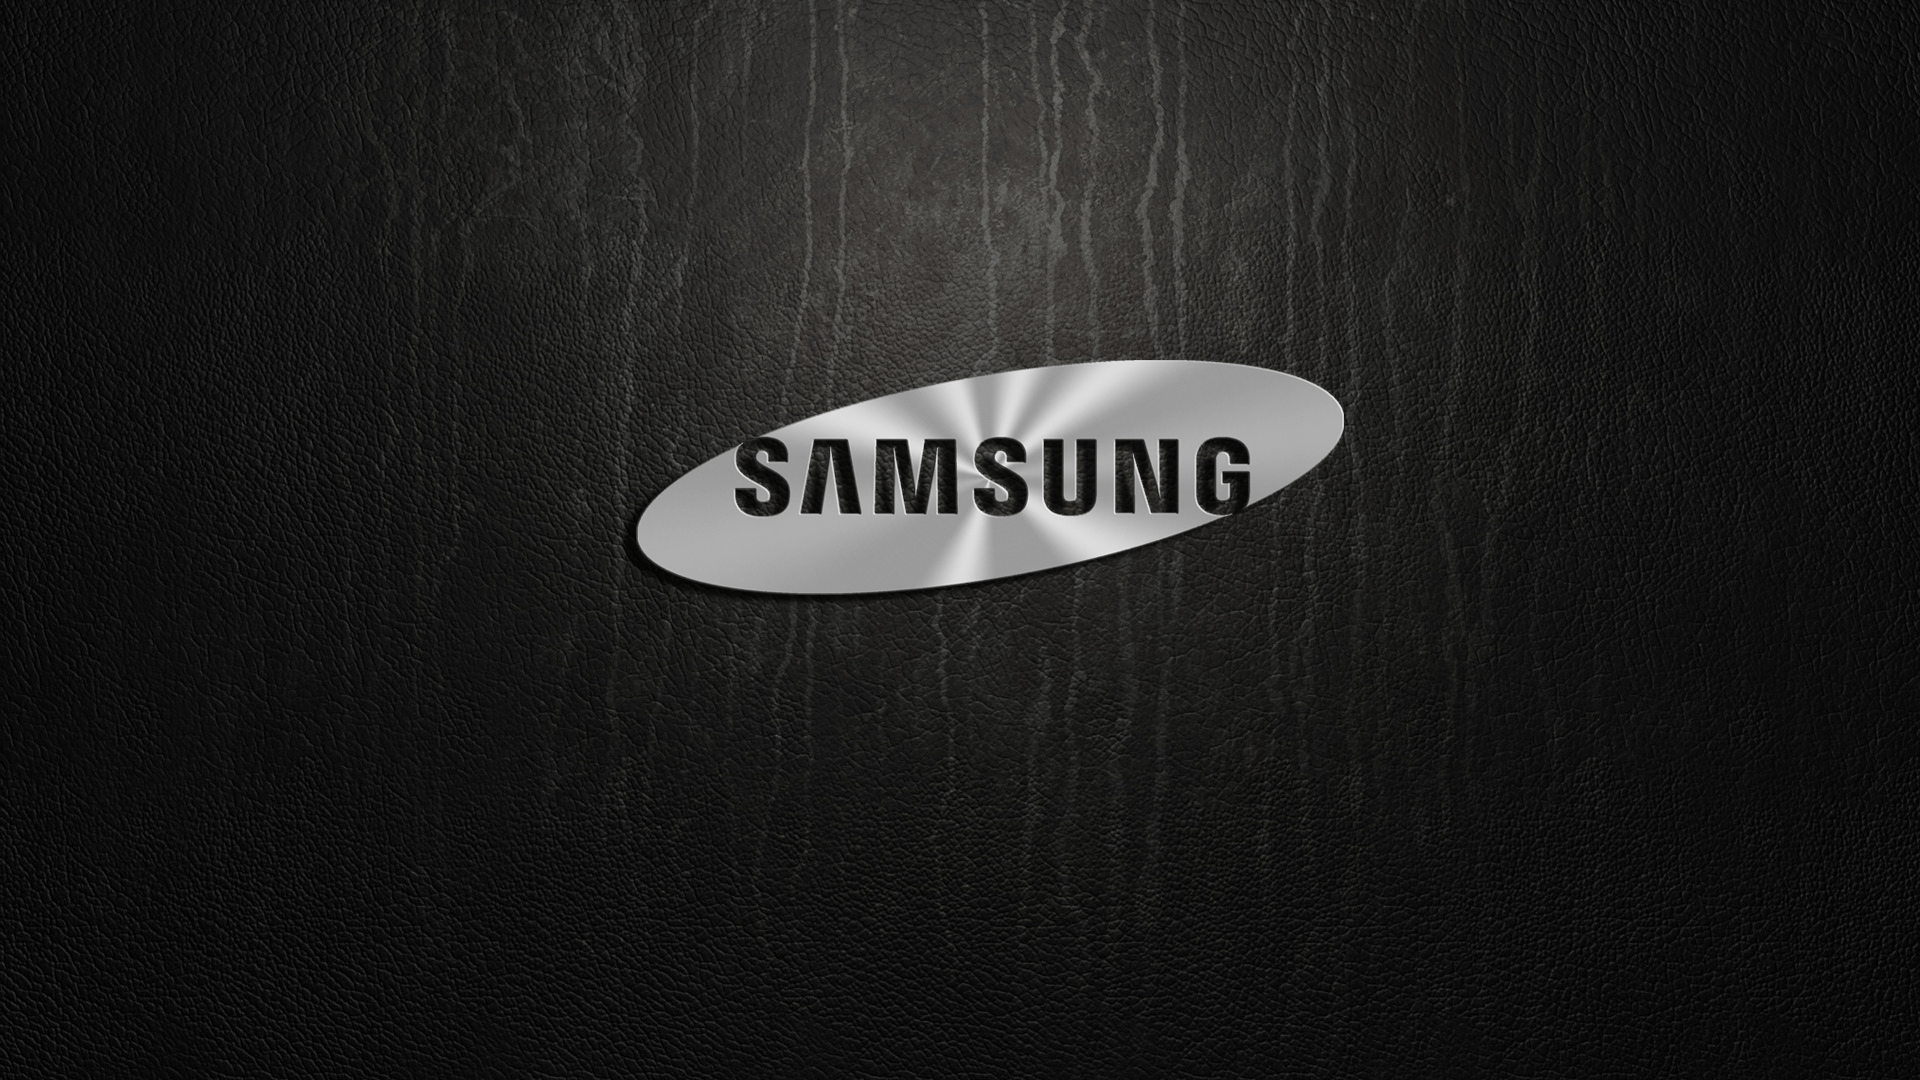 Logo Samsung Wallpapers Wallpaper Cave